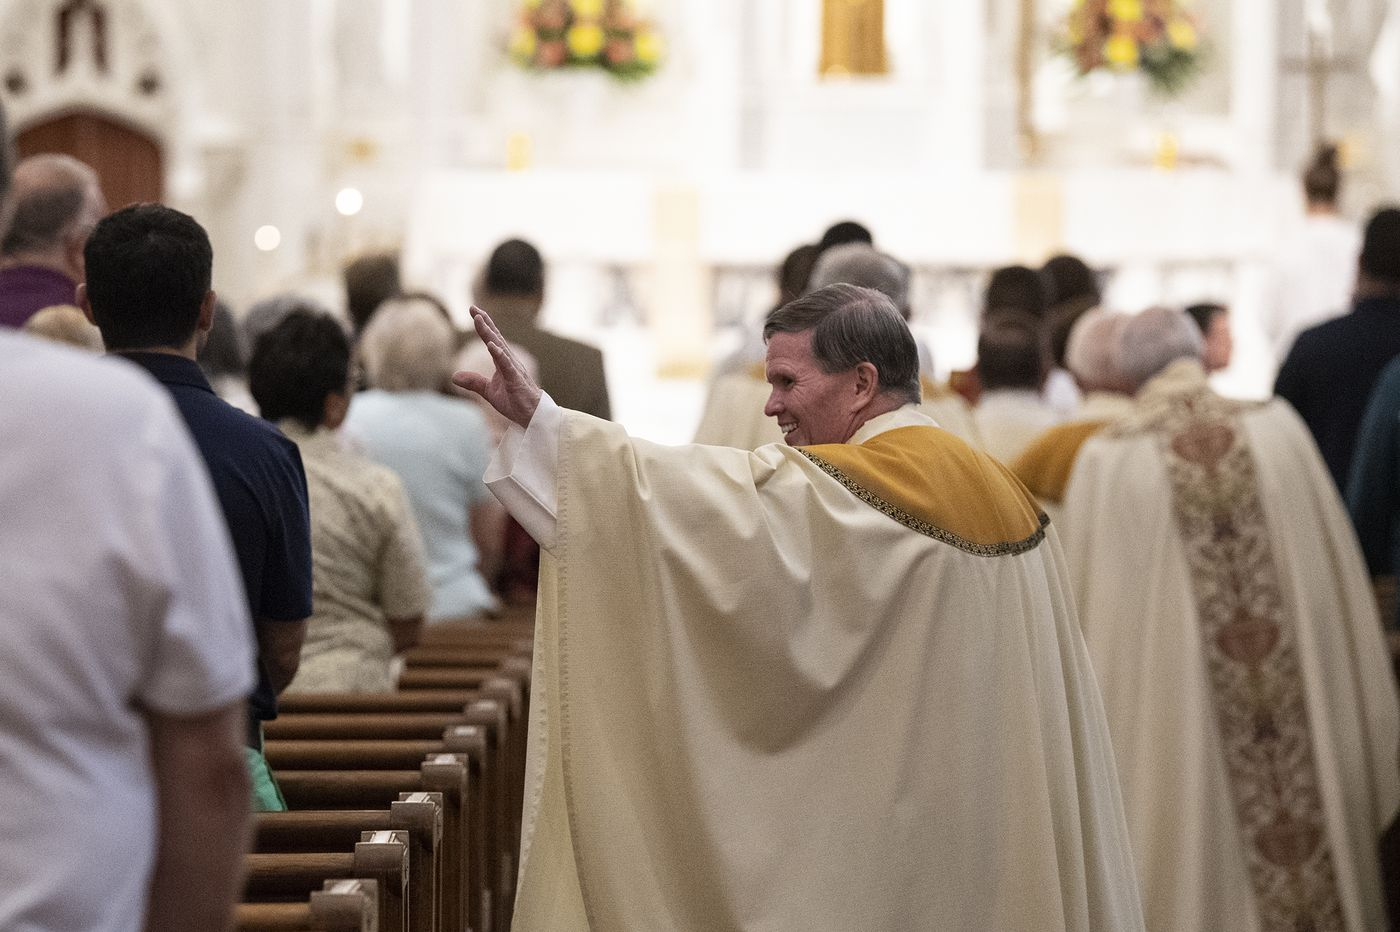 100 years young, St. Matthew Roman Catholic Church celebrates a century of tradition and changes